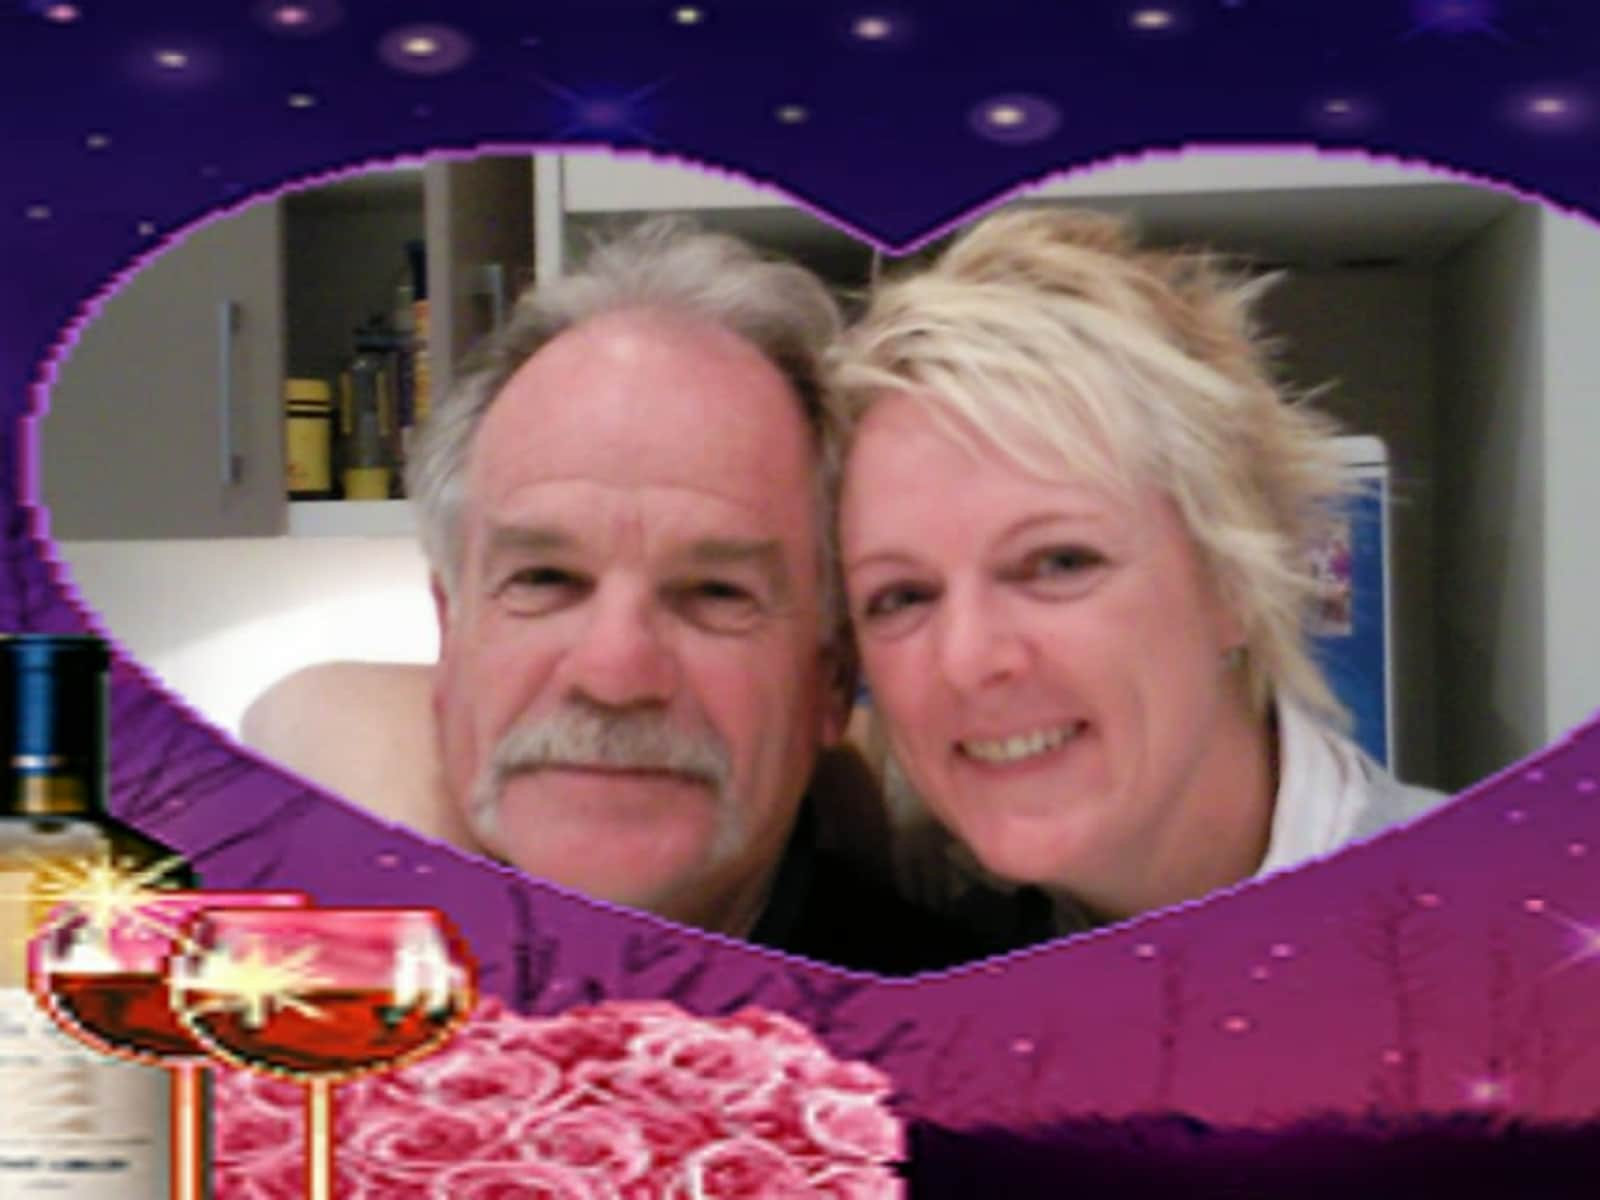 Brian & Joanne from Edmond, Oklahoma, United States